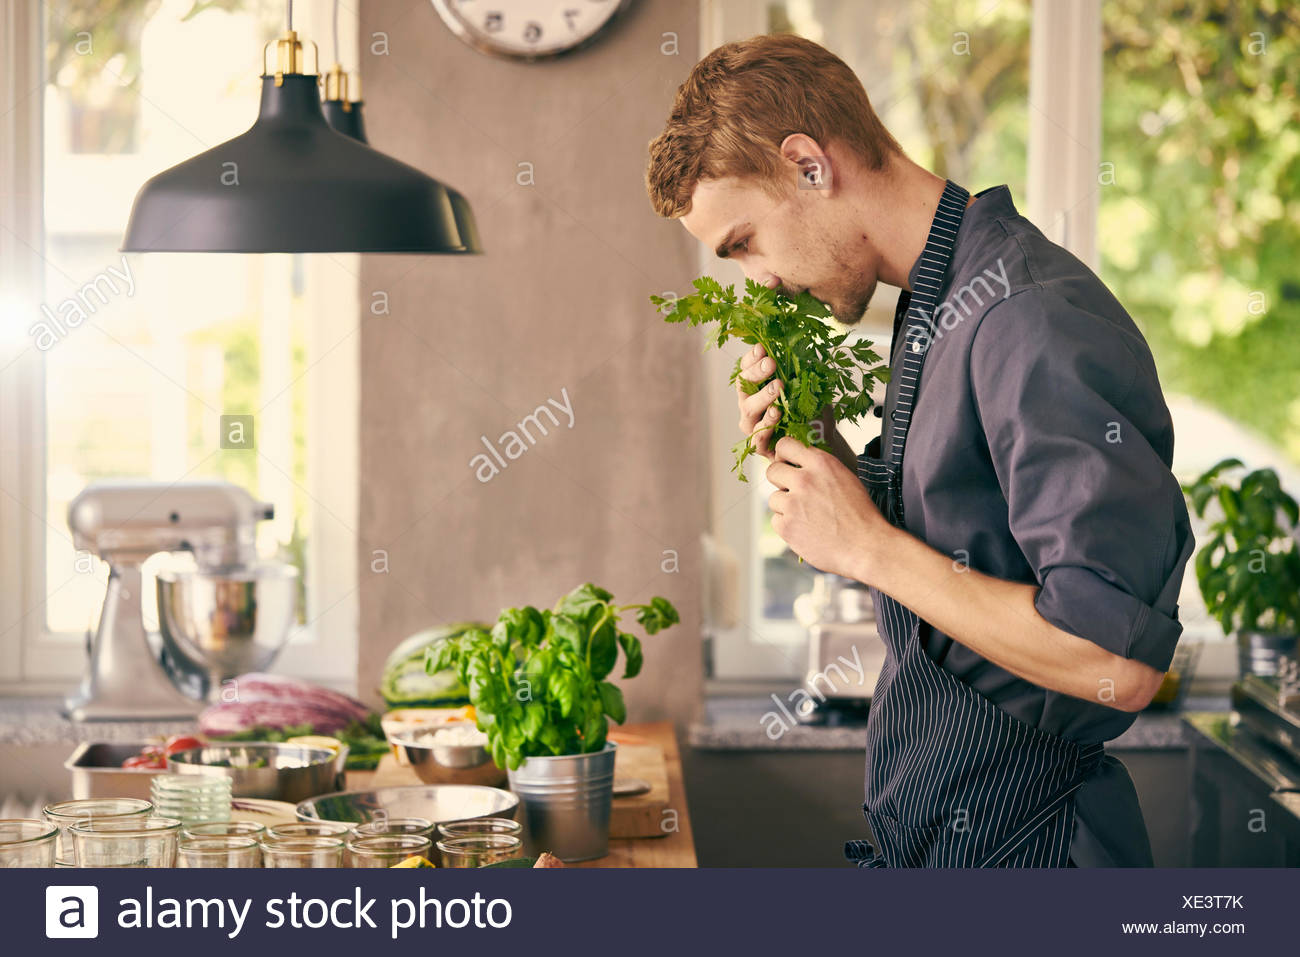 Chef smelling fresh herbs - Stock Image